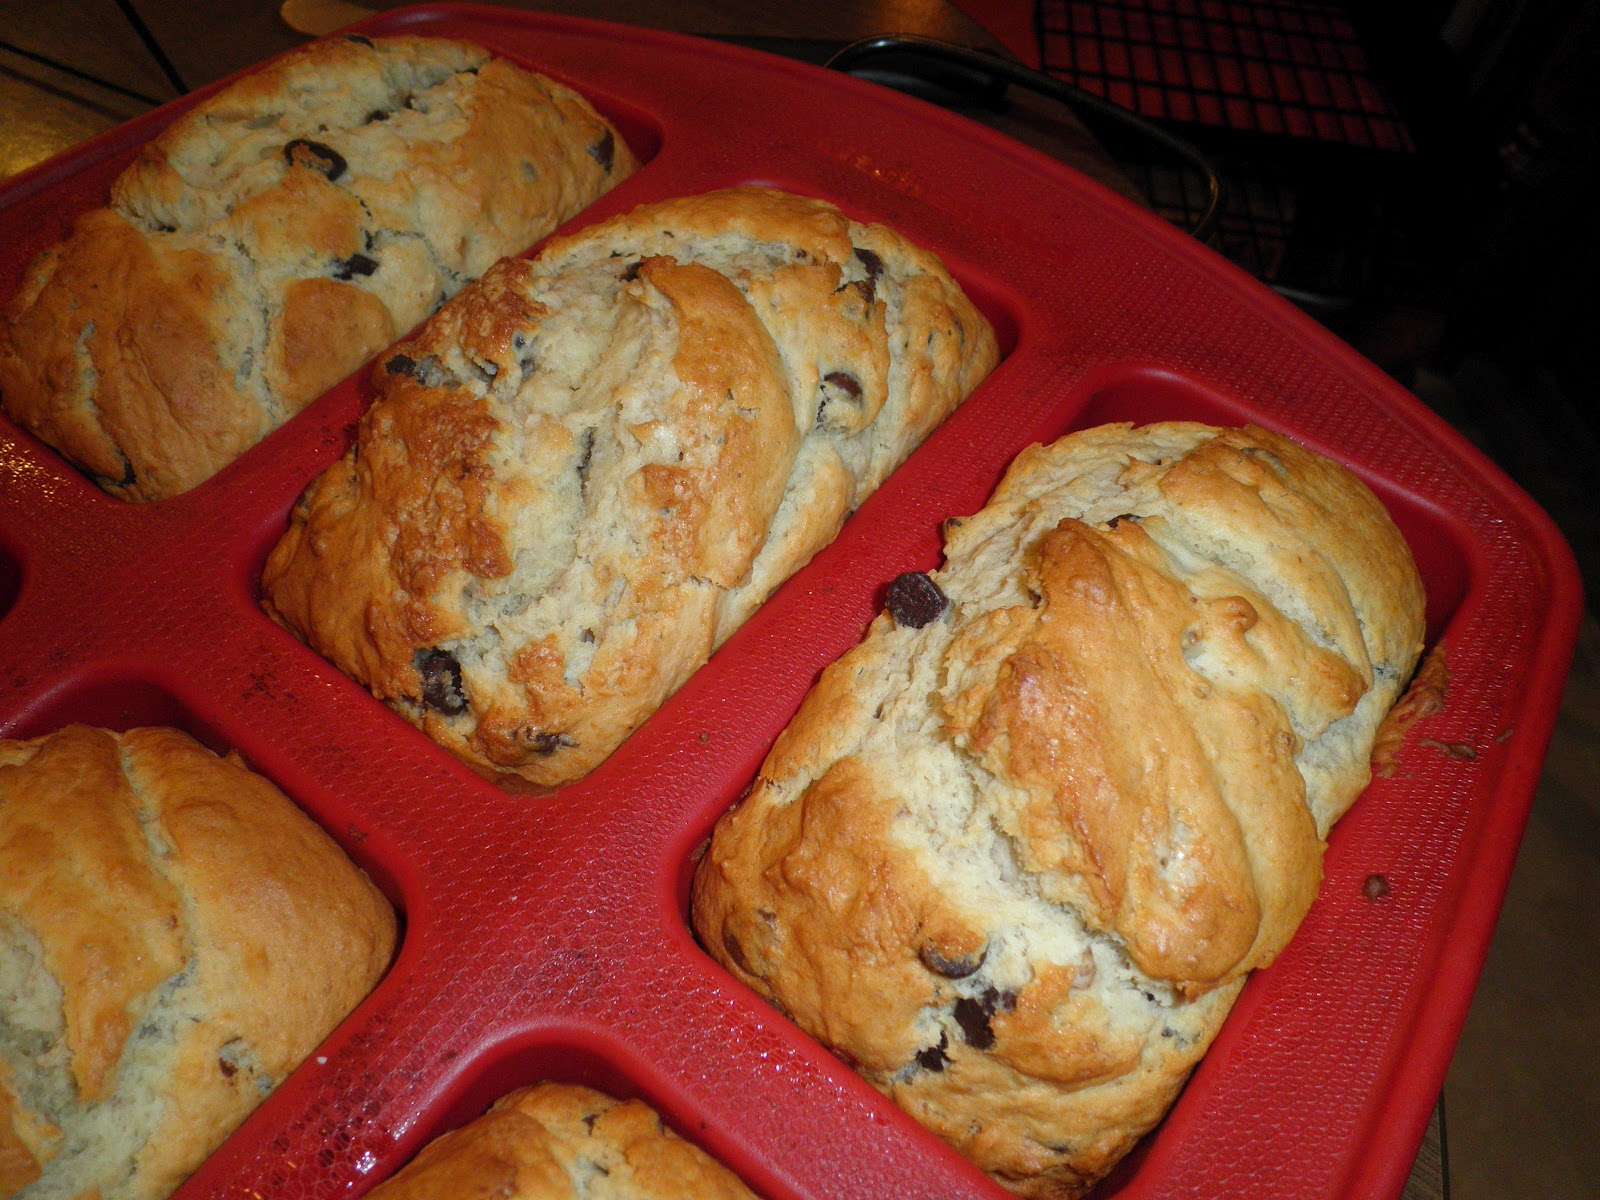 ... from the Cookie Princess: Chocolate Chip Bourbon-Spiked Banana Bread